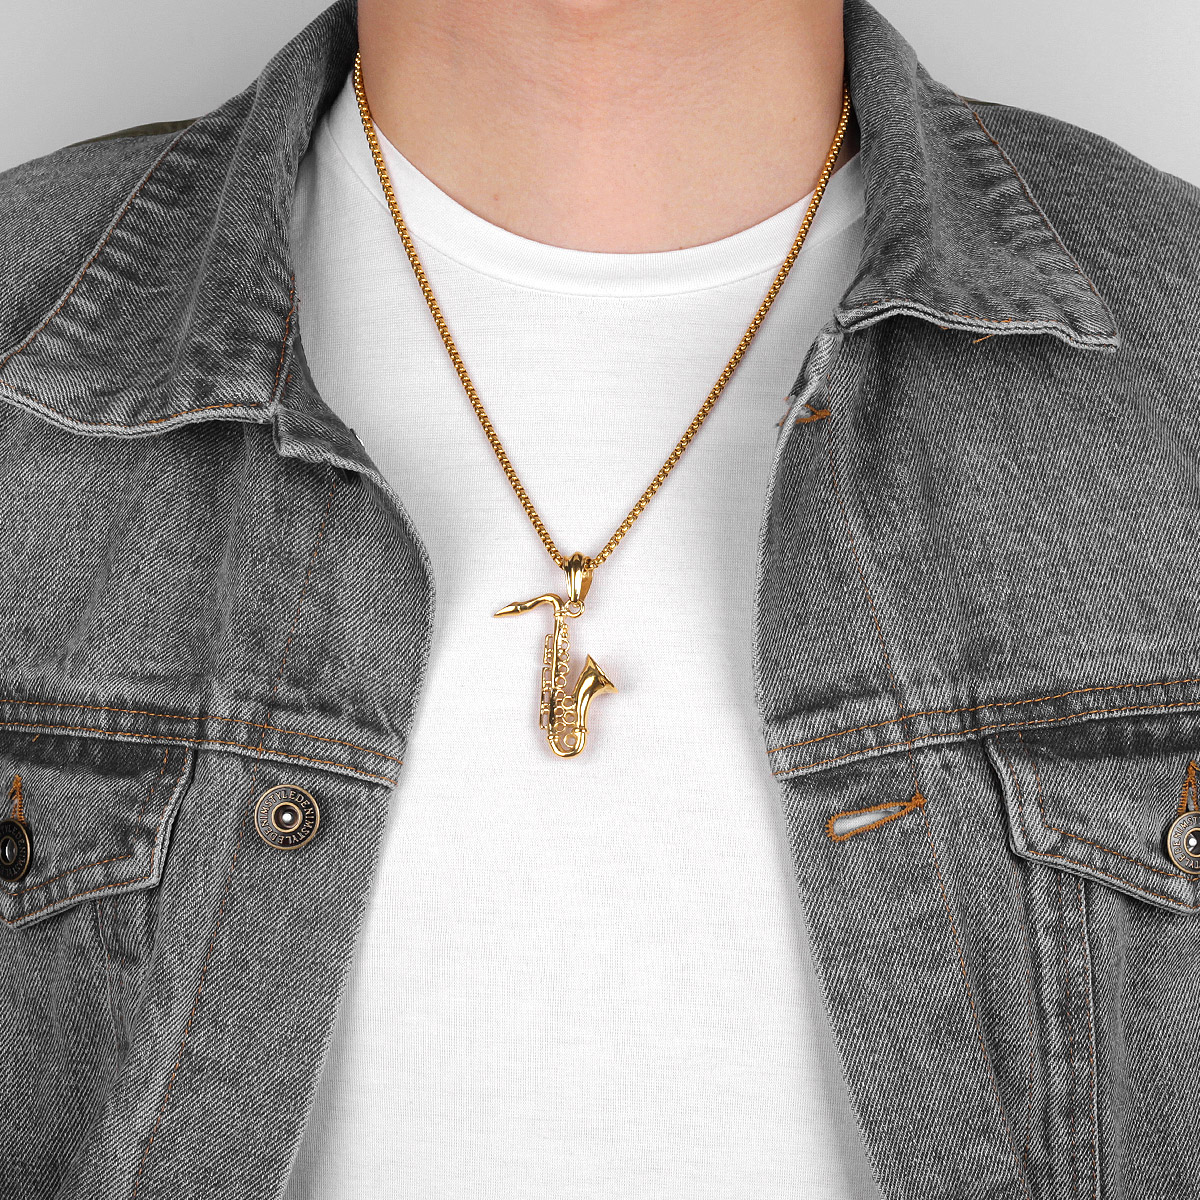 Gold Saxophone Necklaces Pendant Chain Stainless Steel Music Jewelry